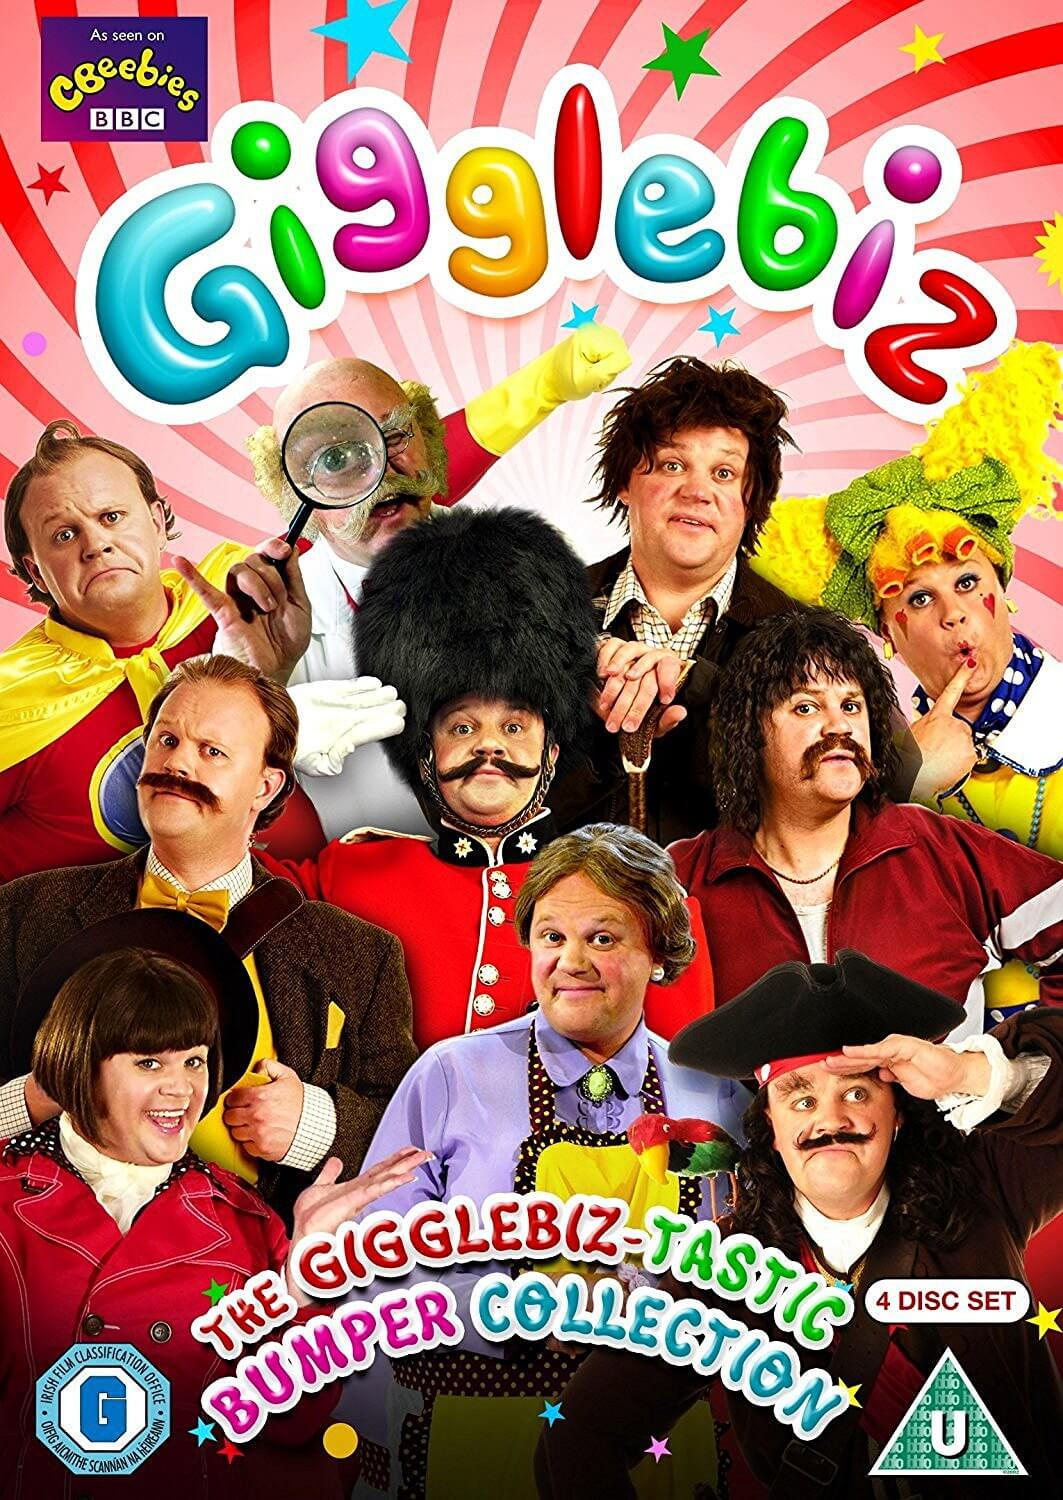 Gigglebiz: The Gigglebiz-tastic Bumper Collection